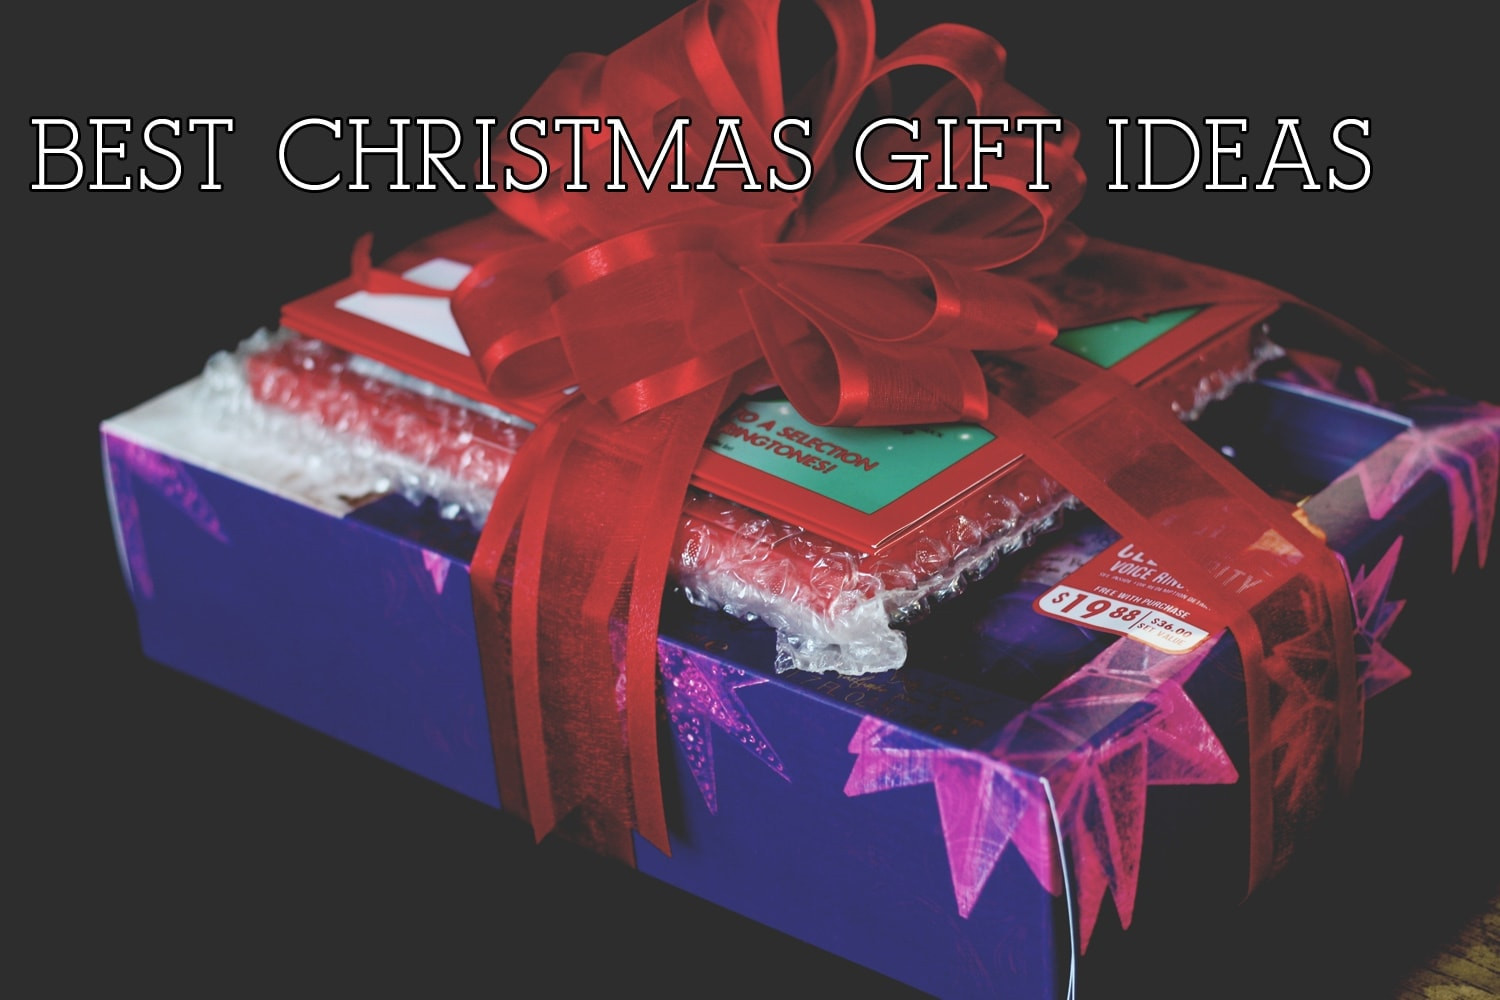 Nice butts gifts gift ideas